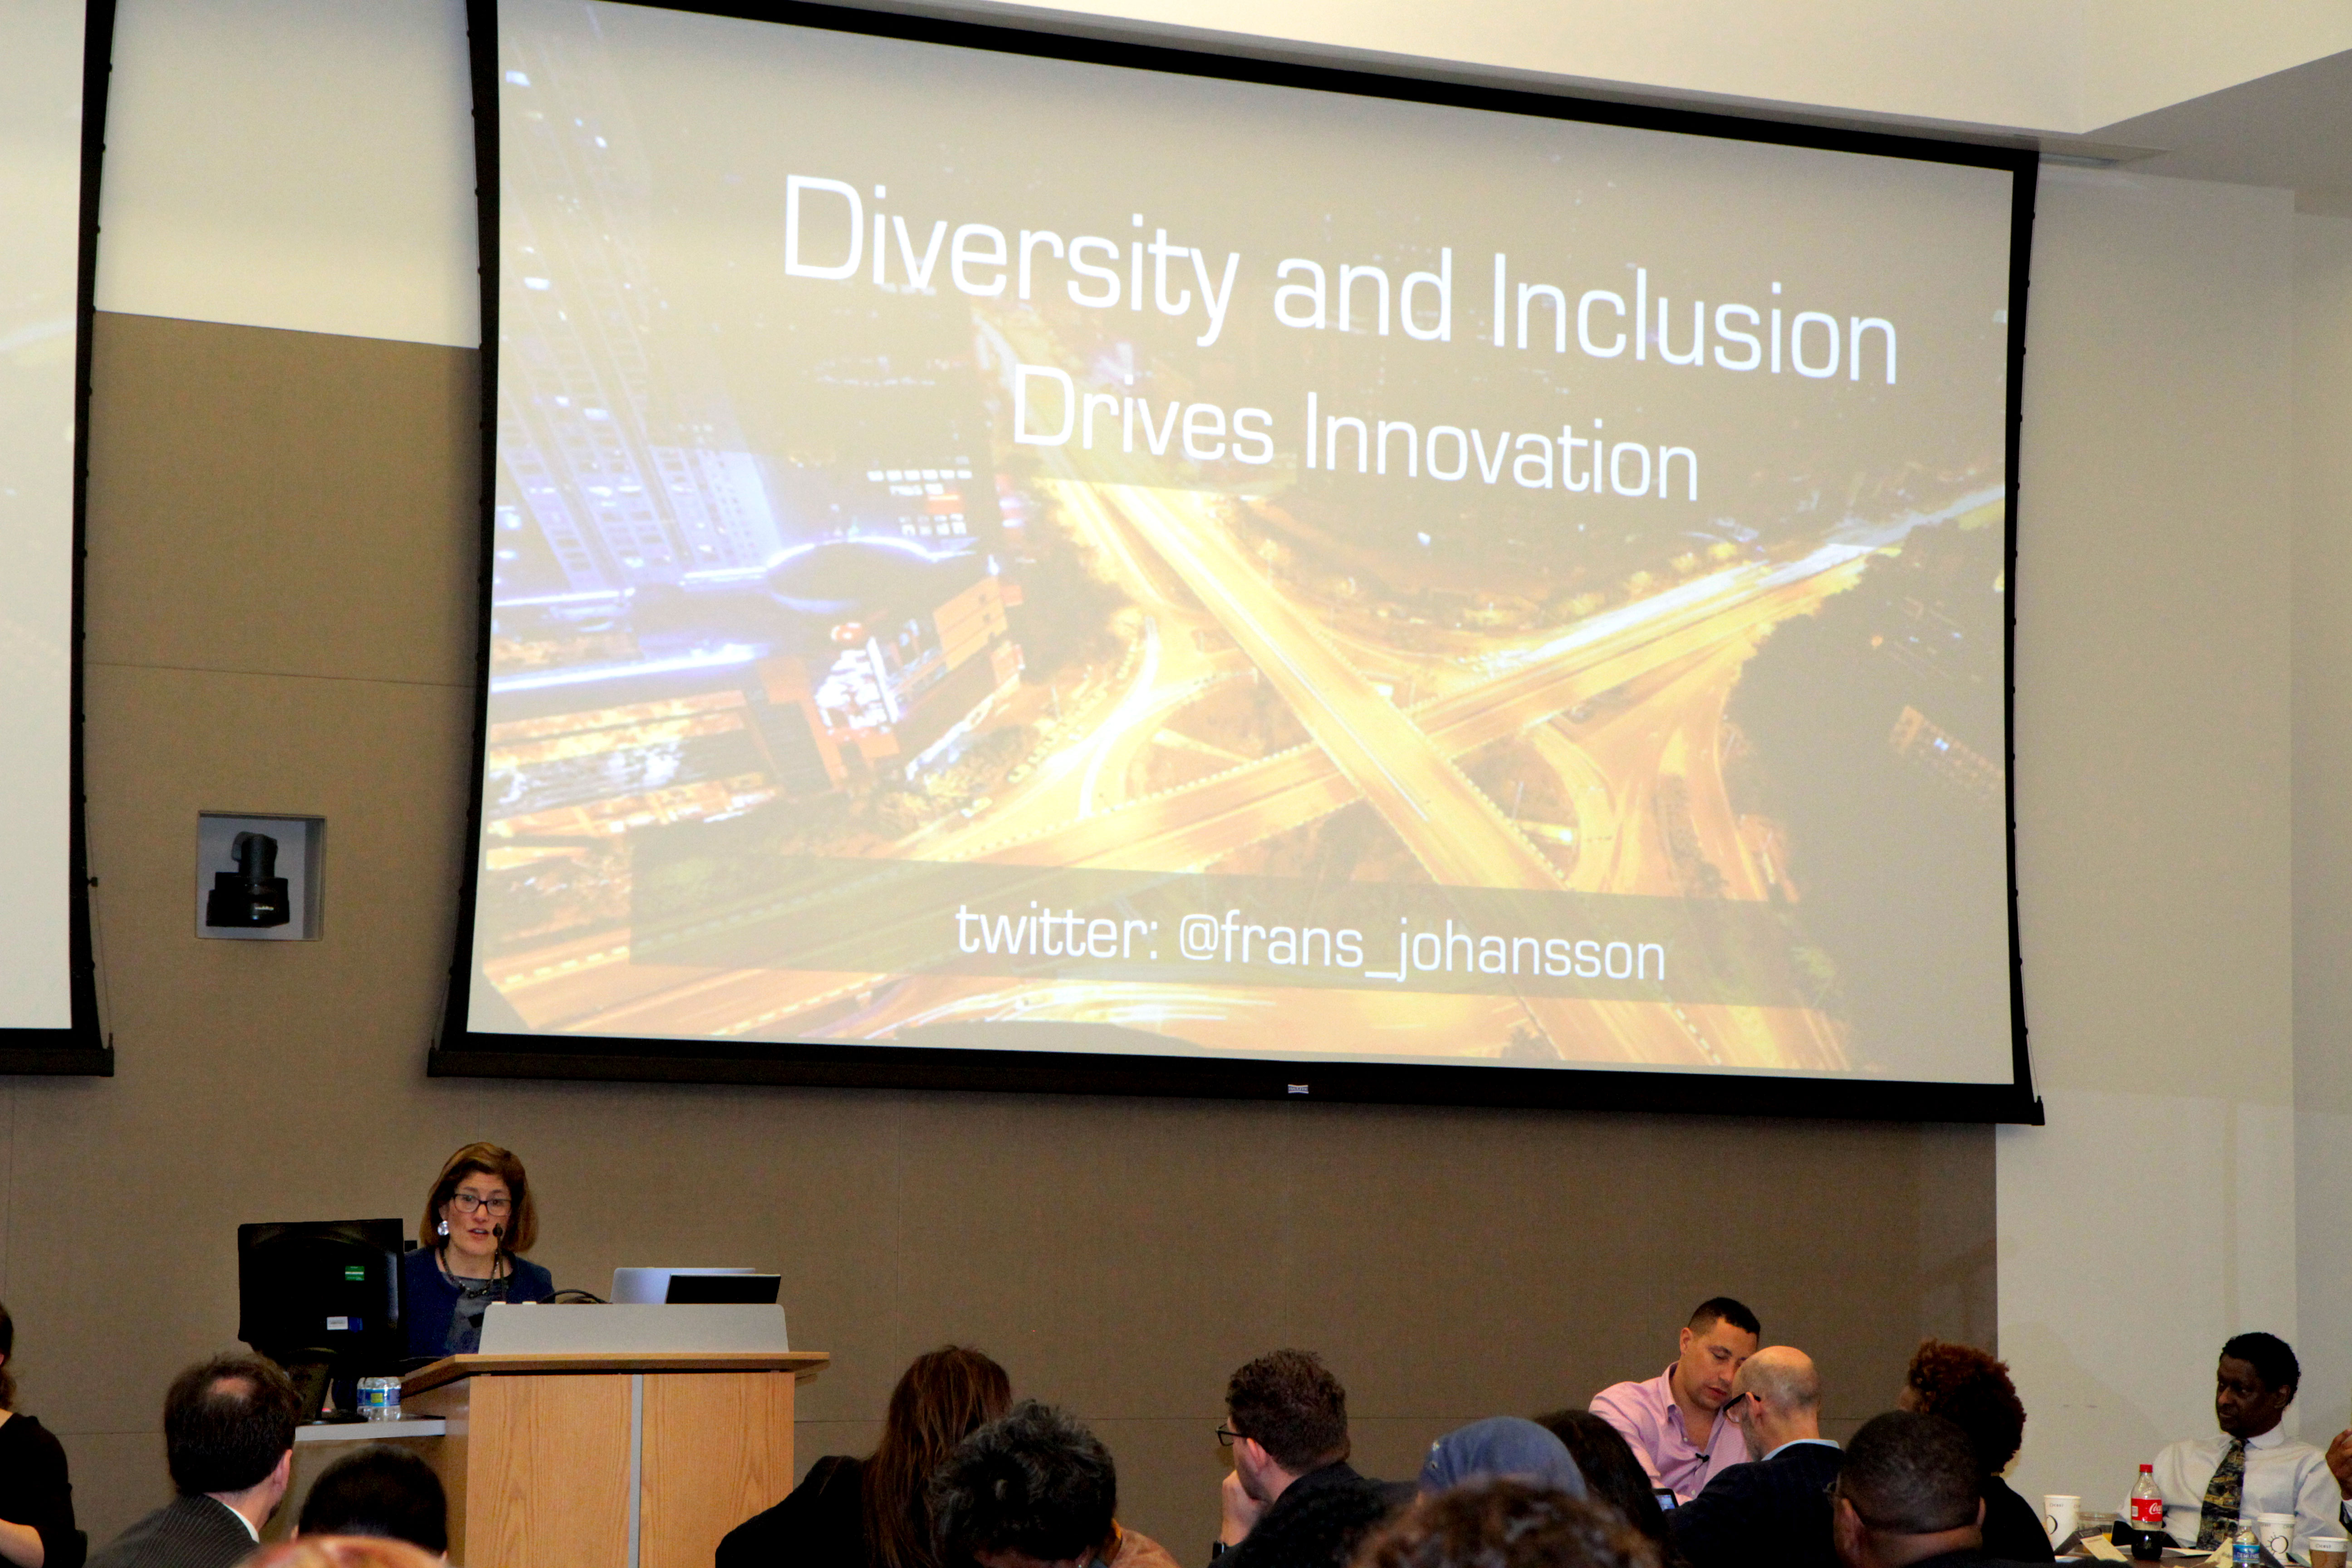 Photo of Acting Director Colbert presenting the Diversity and Inclusion Drives Innovation at the U.S. Coast Guard Headquarters.